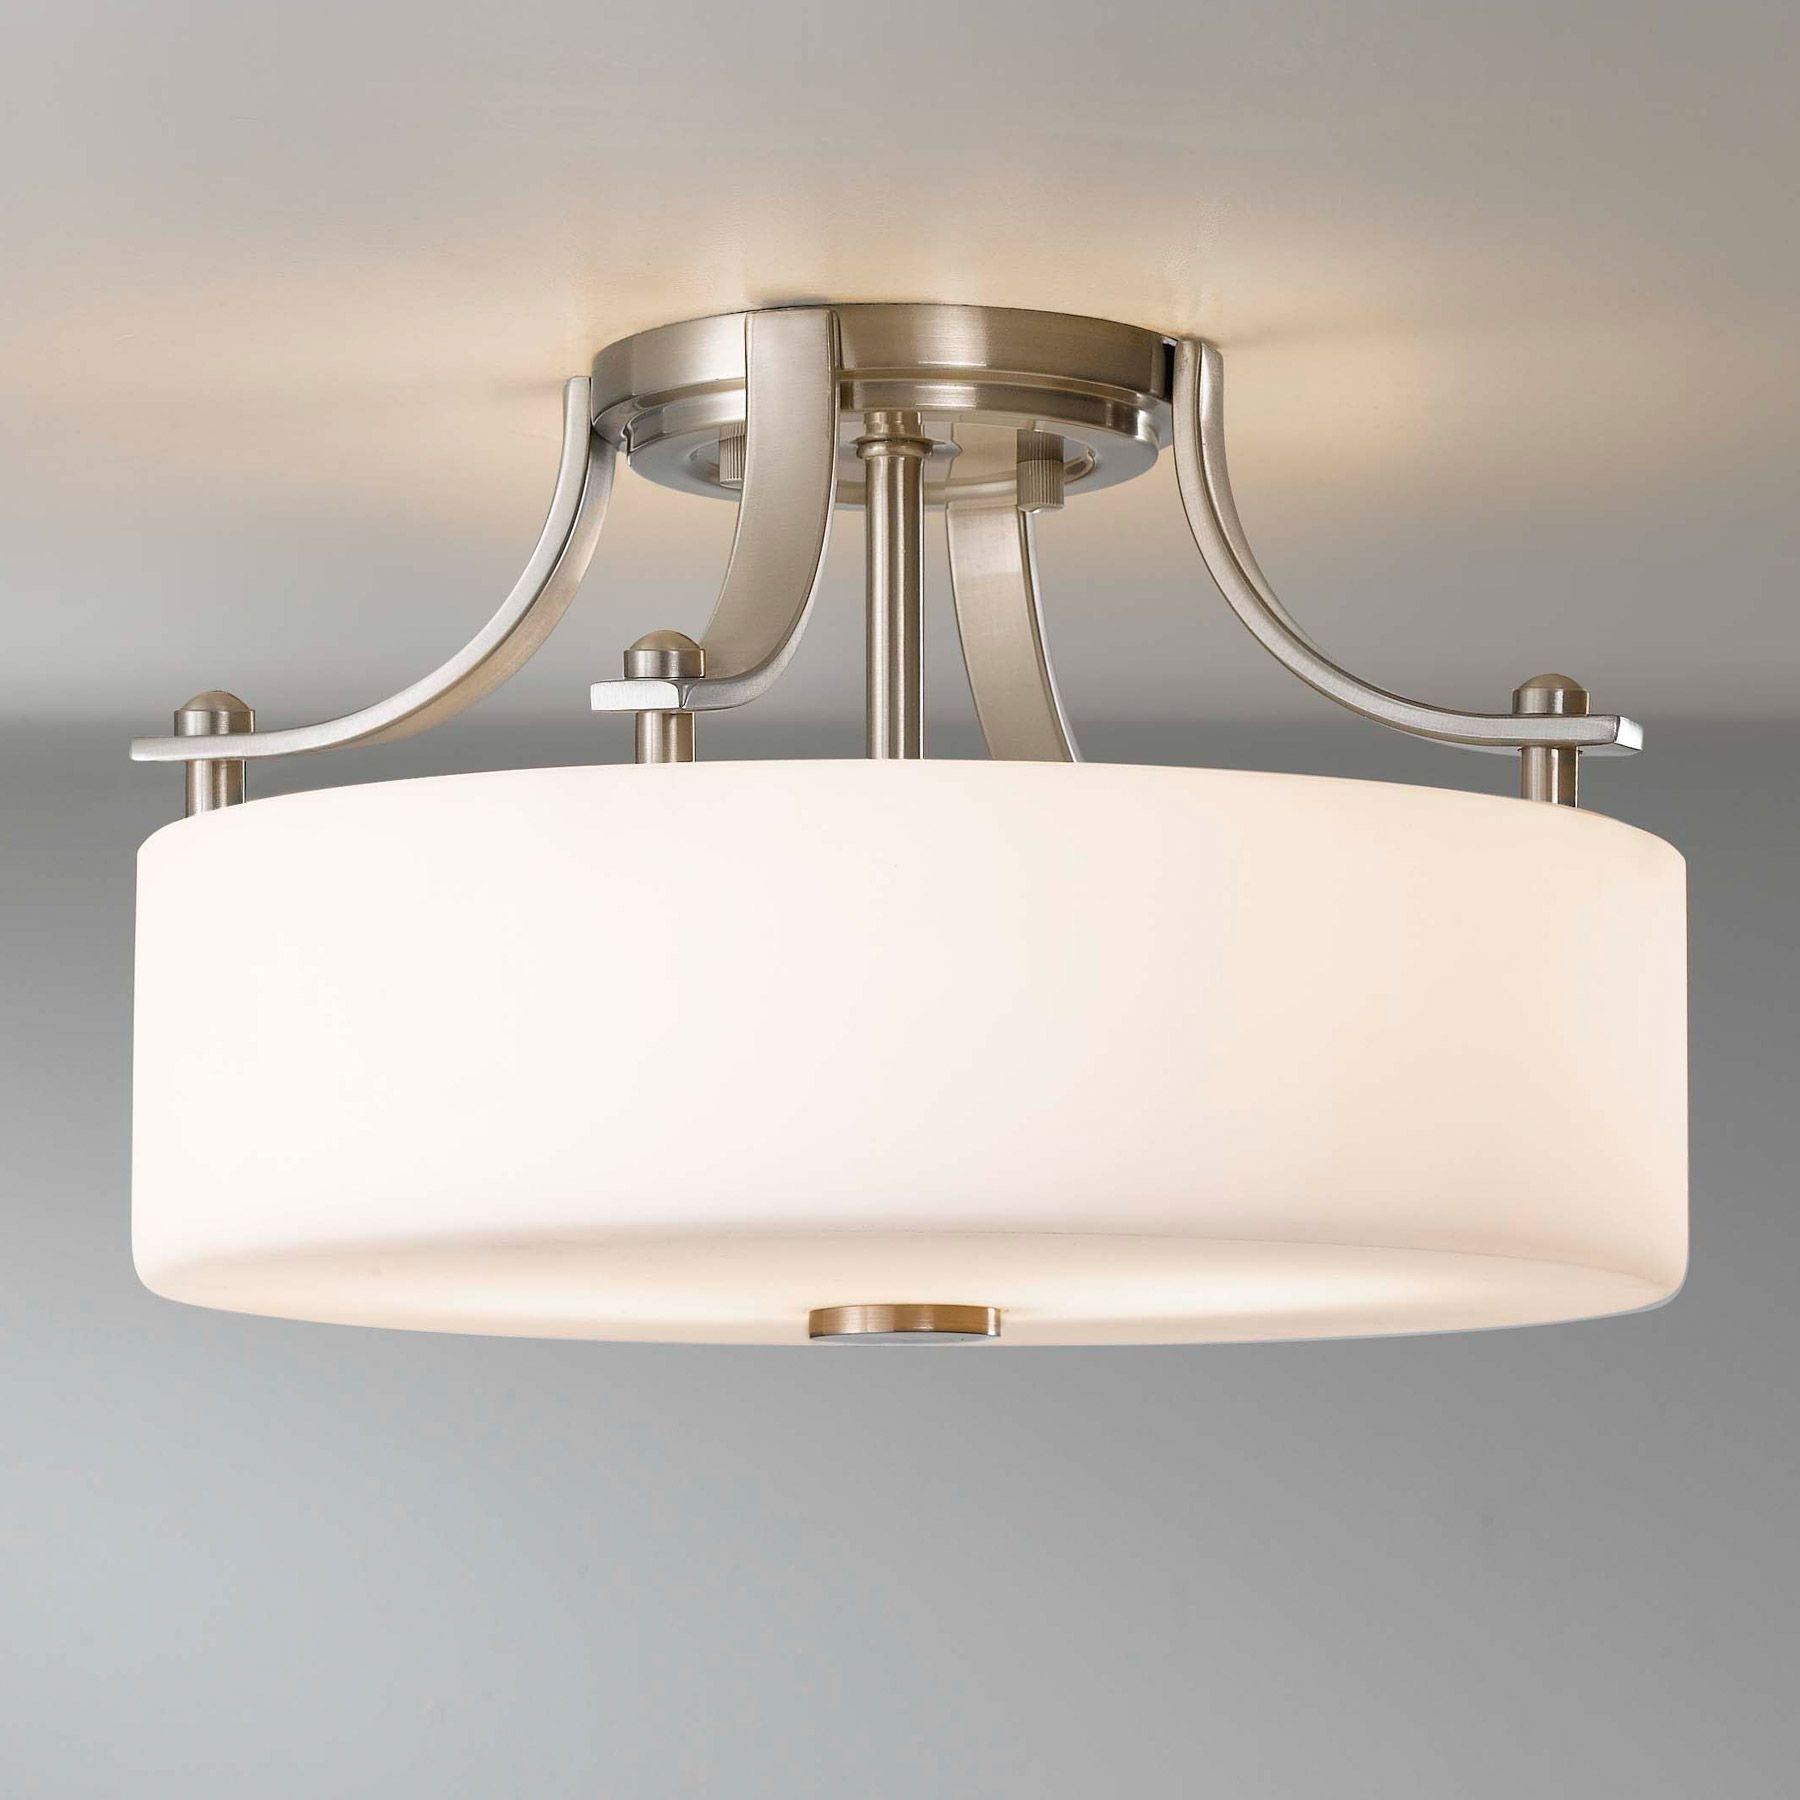 Flush Mount Ceiling Lights For Kitchen White Flushmount Light Fixture Flush Mount Ceiling Light